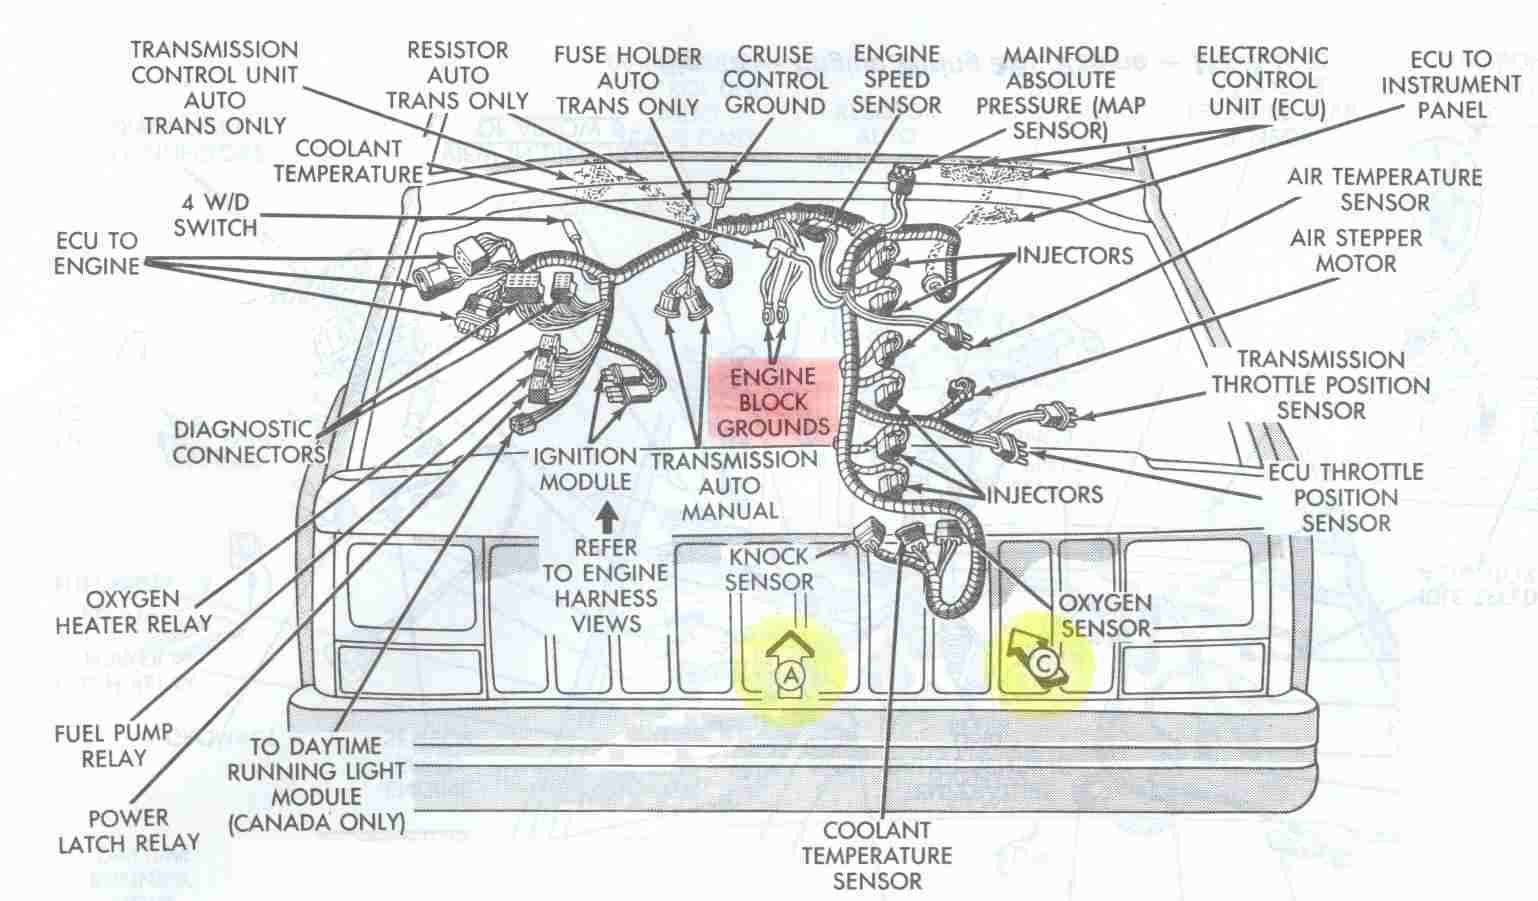 ab0134a7d9e021431187af597eb4aeca engine bay schematic showing major electrical ground points for 2000 jeep grand cherokee fuse box diagram at edmiracle.co